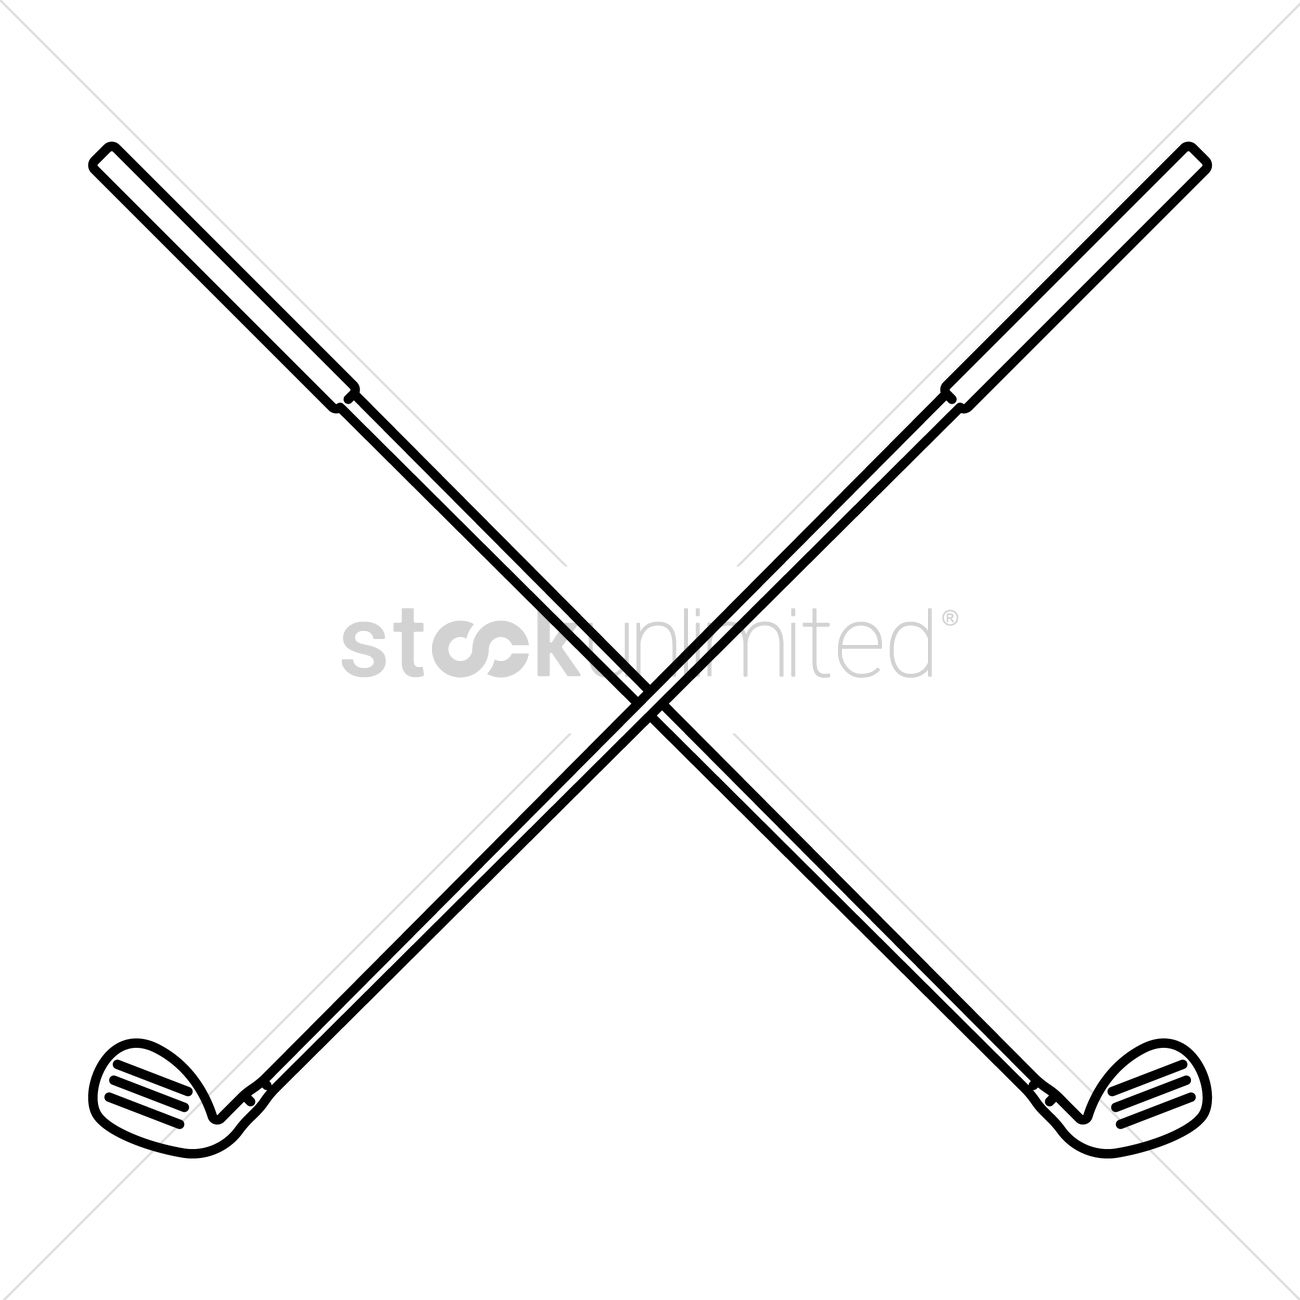 Crossed Golf Clubs Vector Image